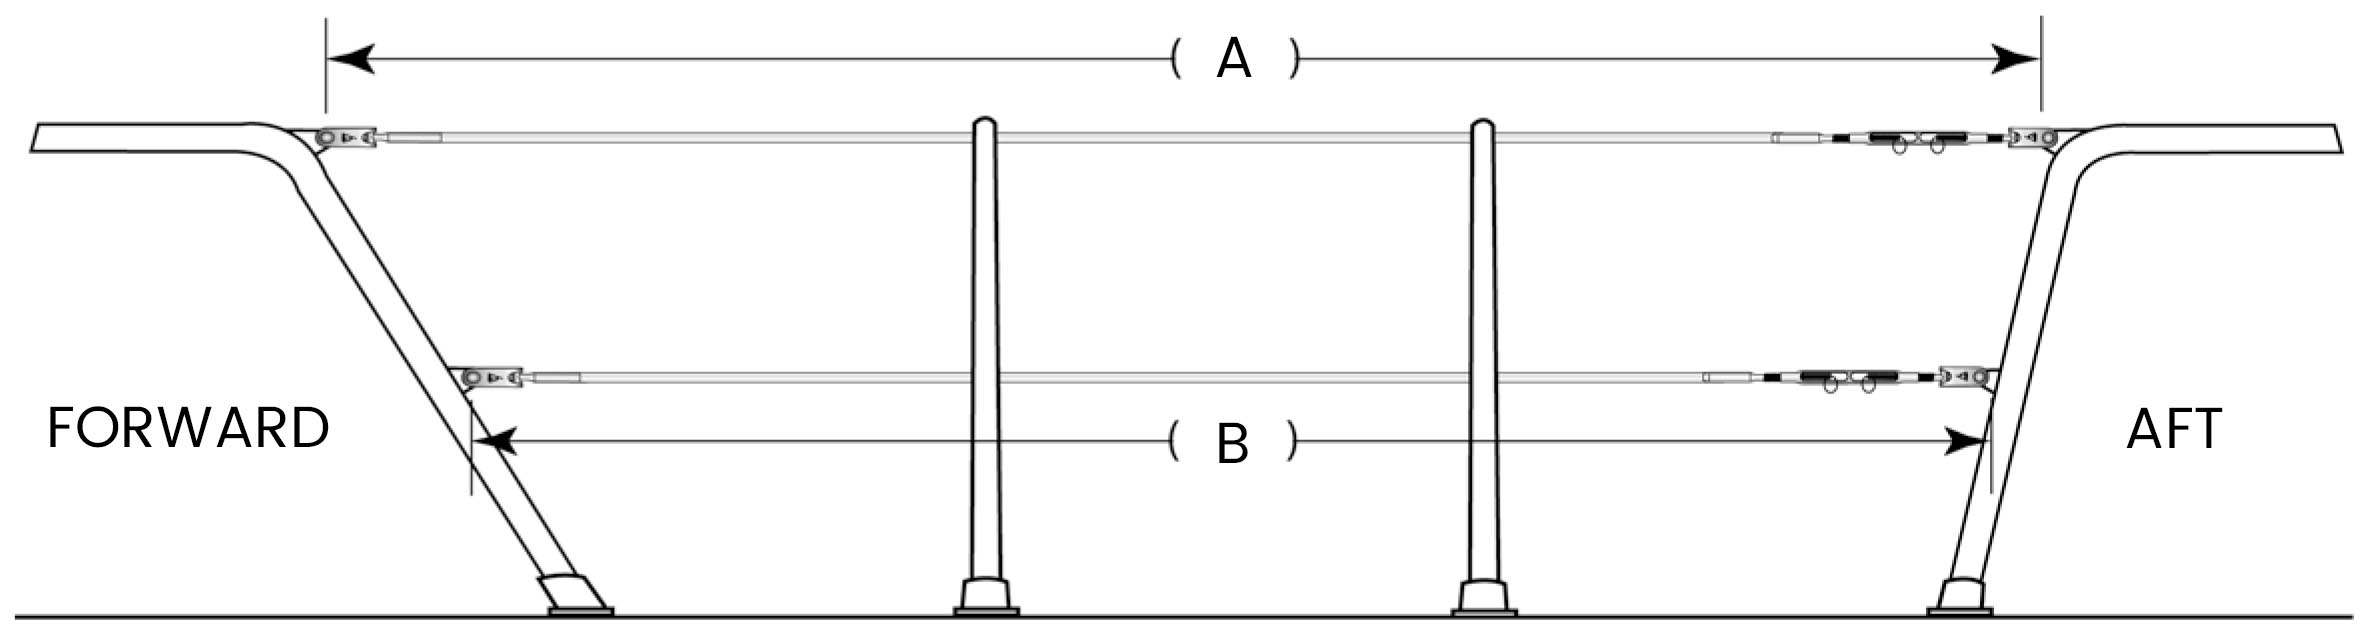 Sailboat Measurement Form - No Gate